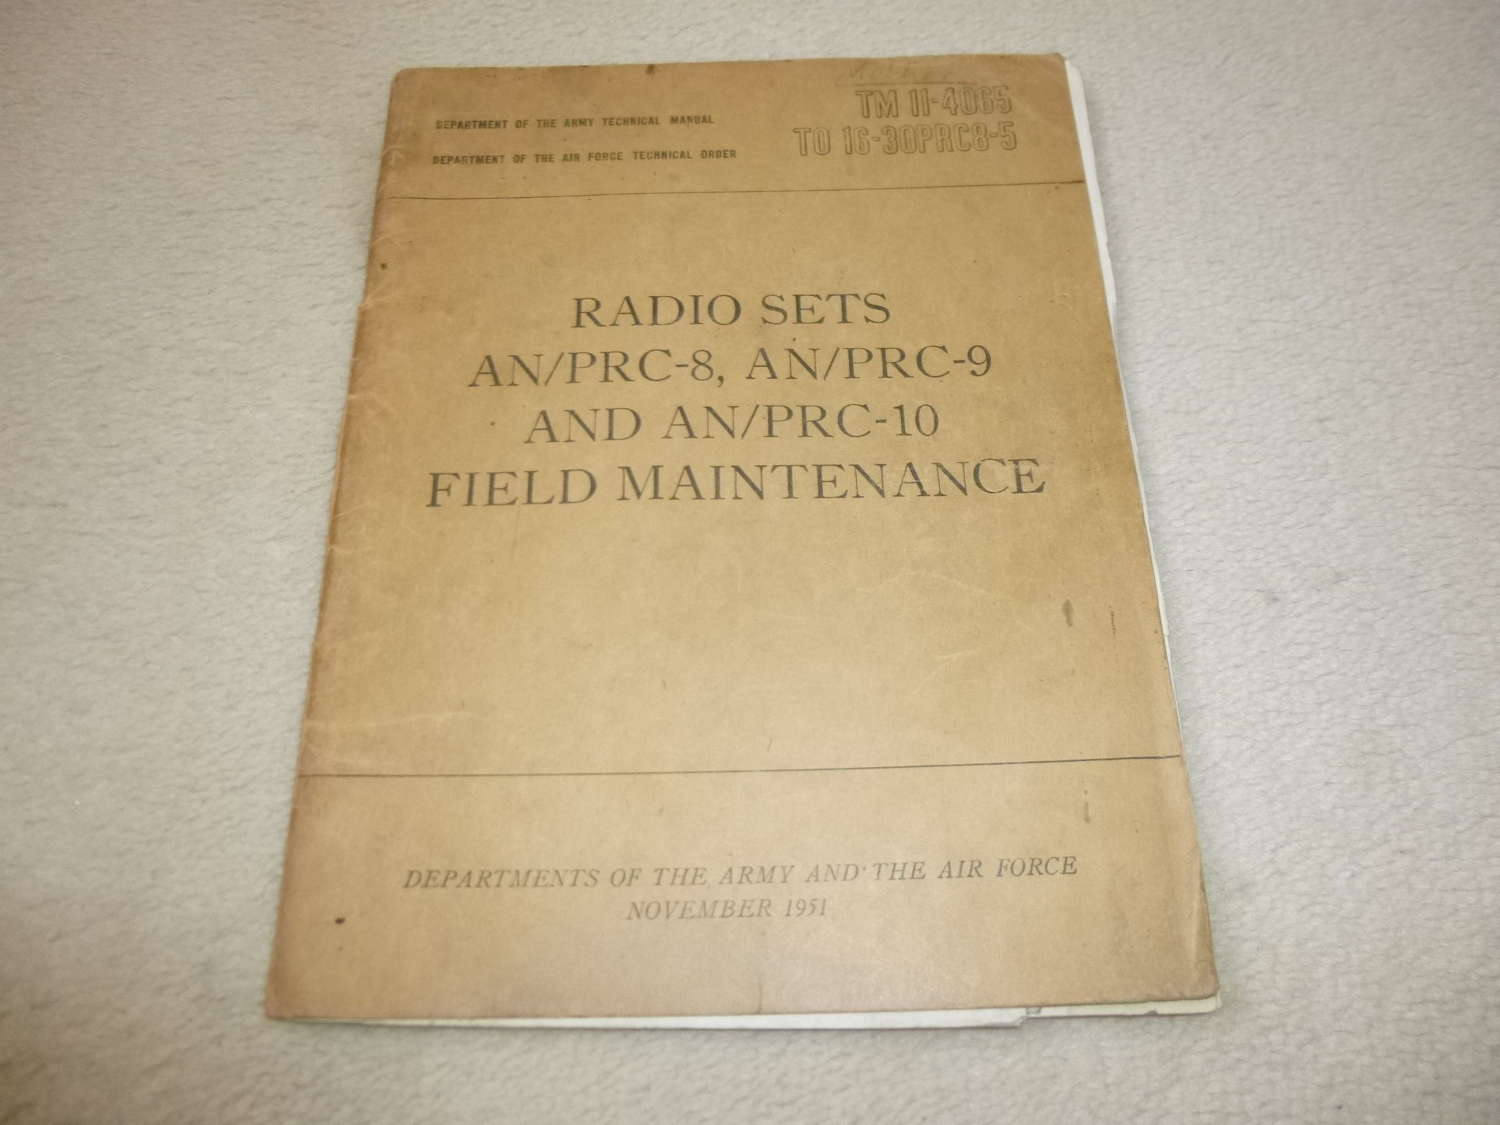 US Army TM11-4065 AN/PRC-8-9-10 Maintenance Manual